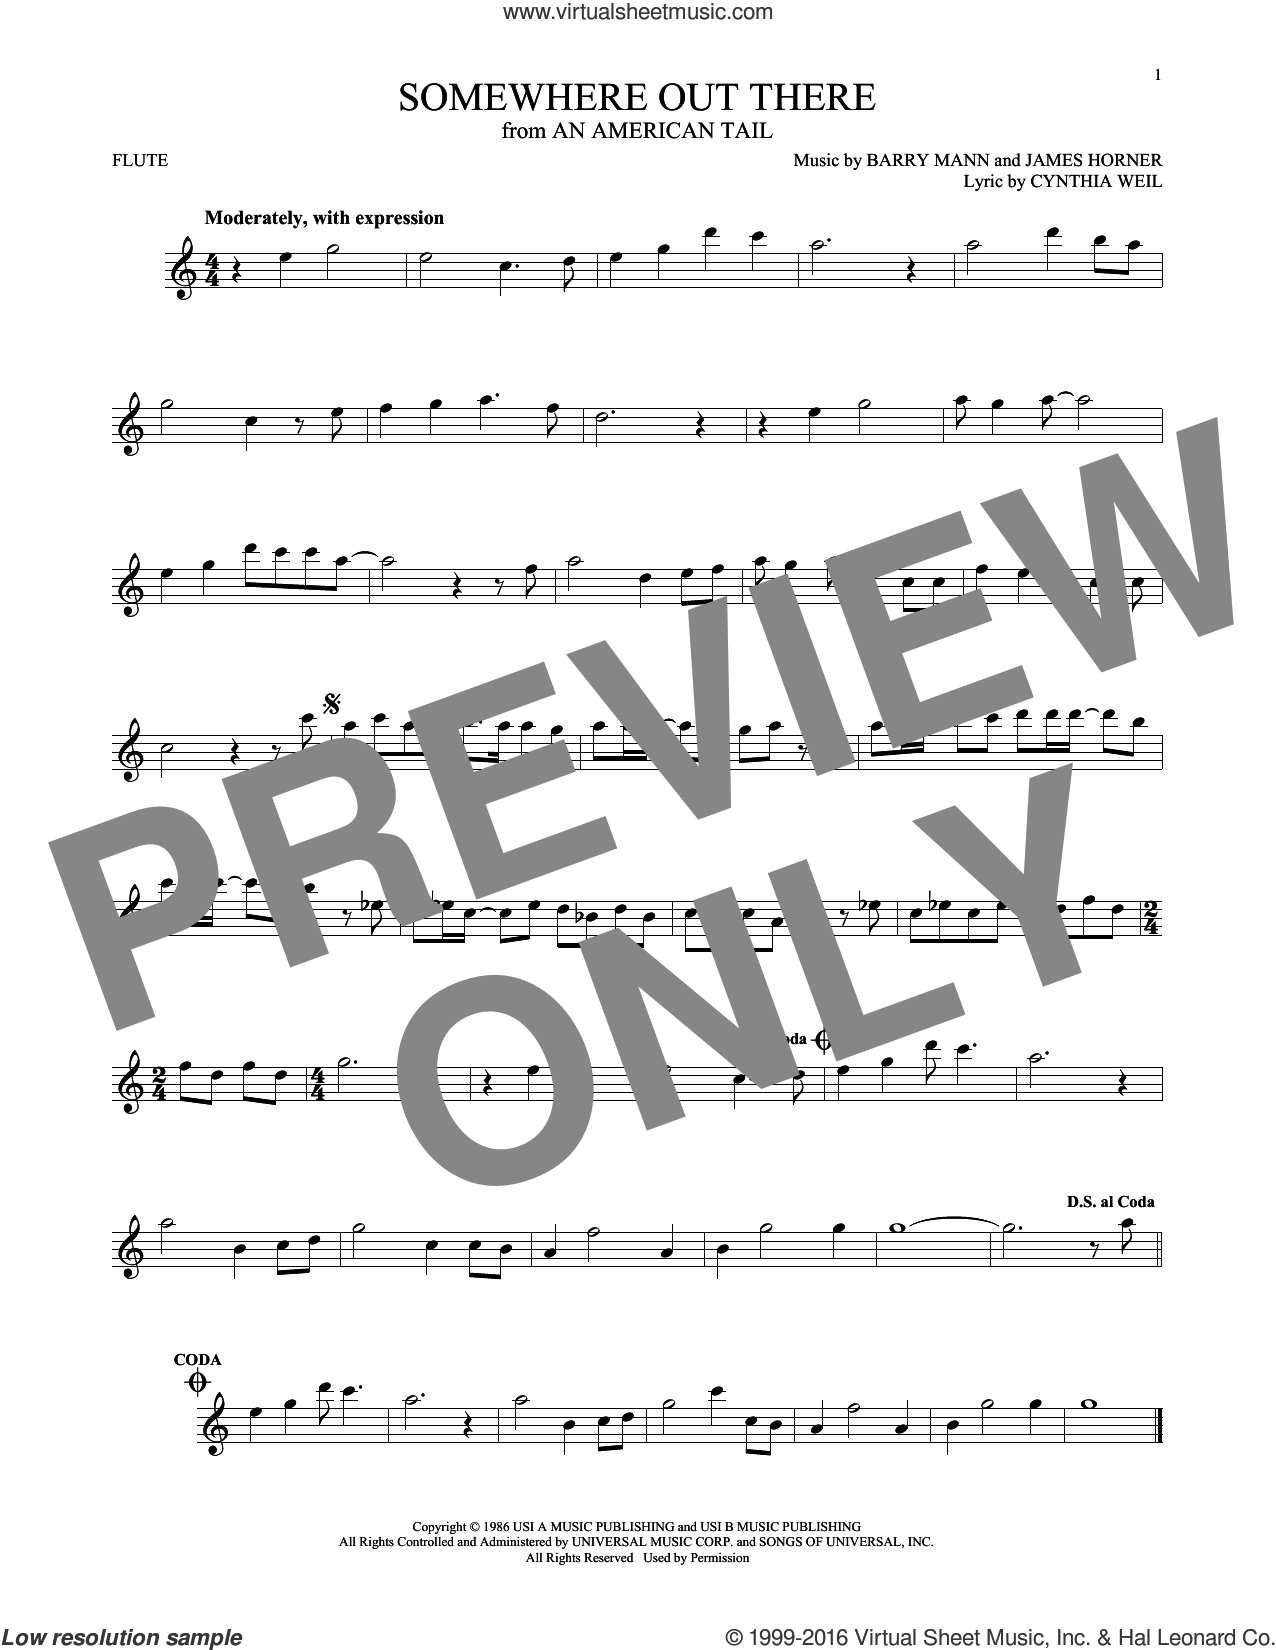 Somewhere Out There sheet music for flute solo by Linda Ronstadt & James Ingram, Barry Mann, Cynthia Weil and James Horner, intermediate